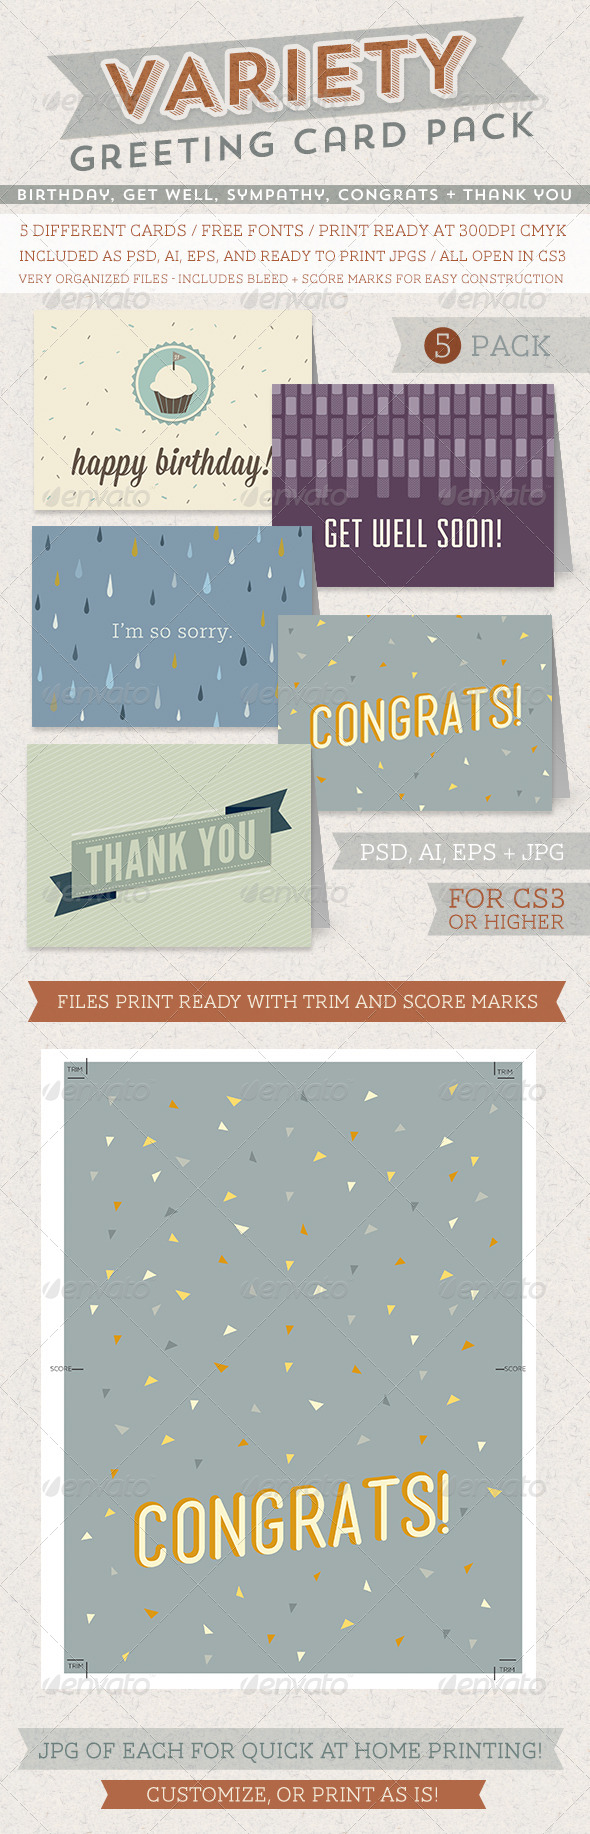 GraphicRiver Greeting Card Variety Pack 5220934